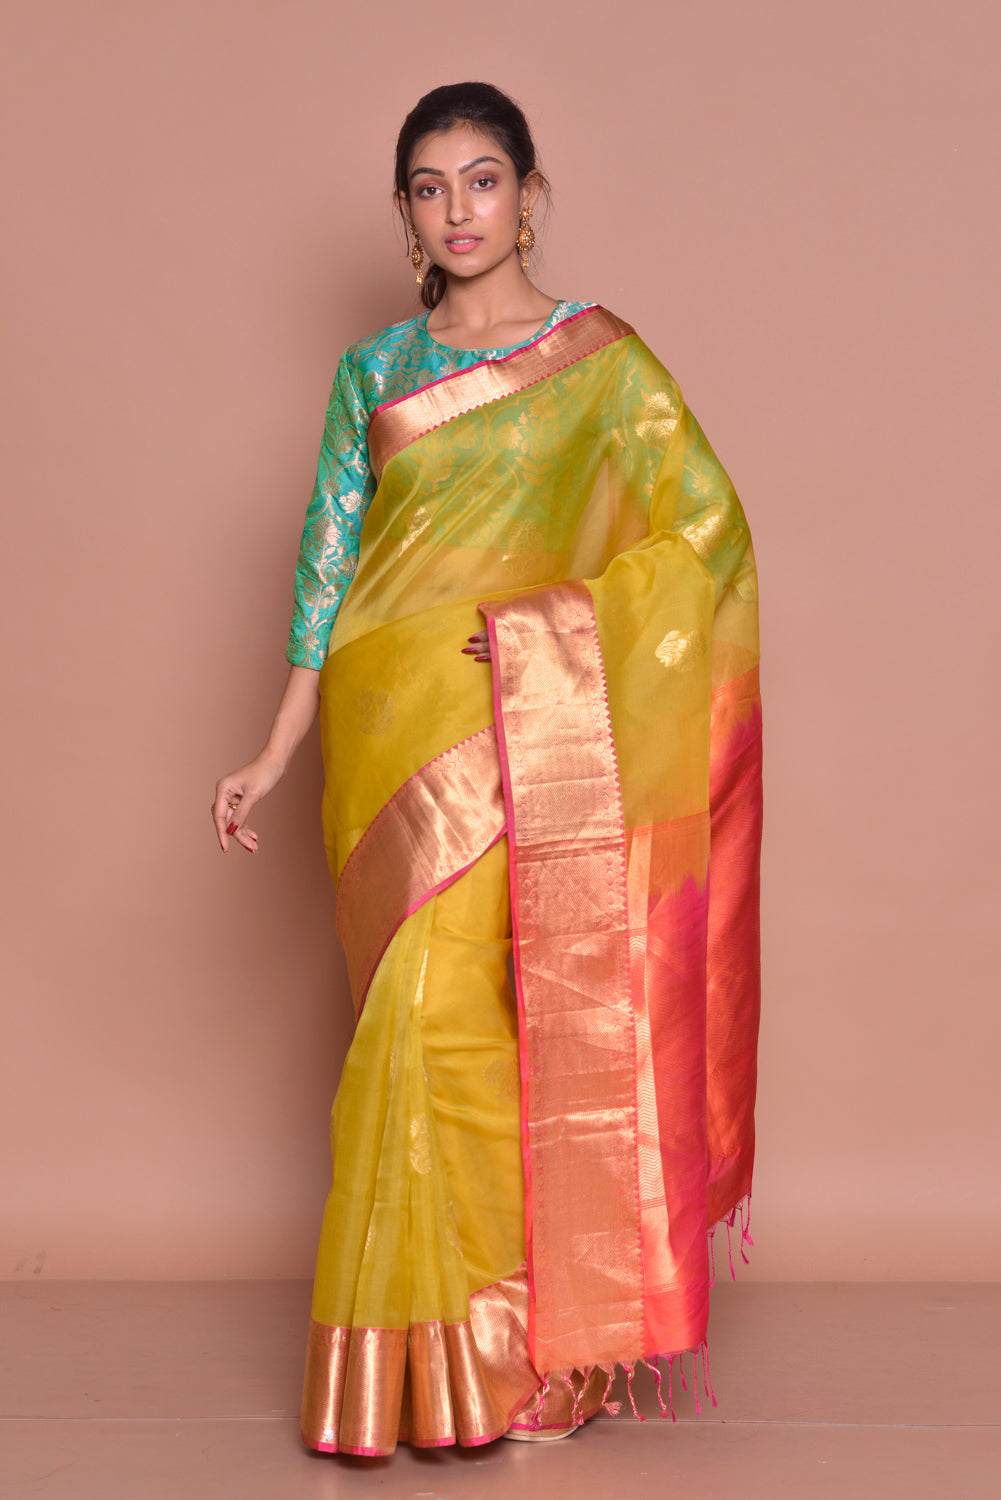 Shop yellow kora Banarasi saree online in USA with red zari pallu and green Banarasi sari blouse. Set ethnic fashion goals with exquisite designer sarees with blouse, Banarasi sarees, Kanchipuram saris from Pure Elegance Indian luxury clothing store in USA.-full view